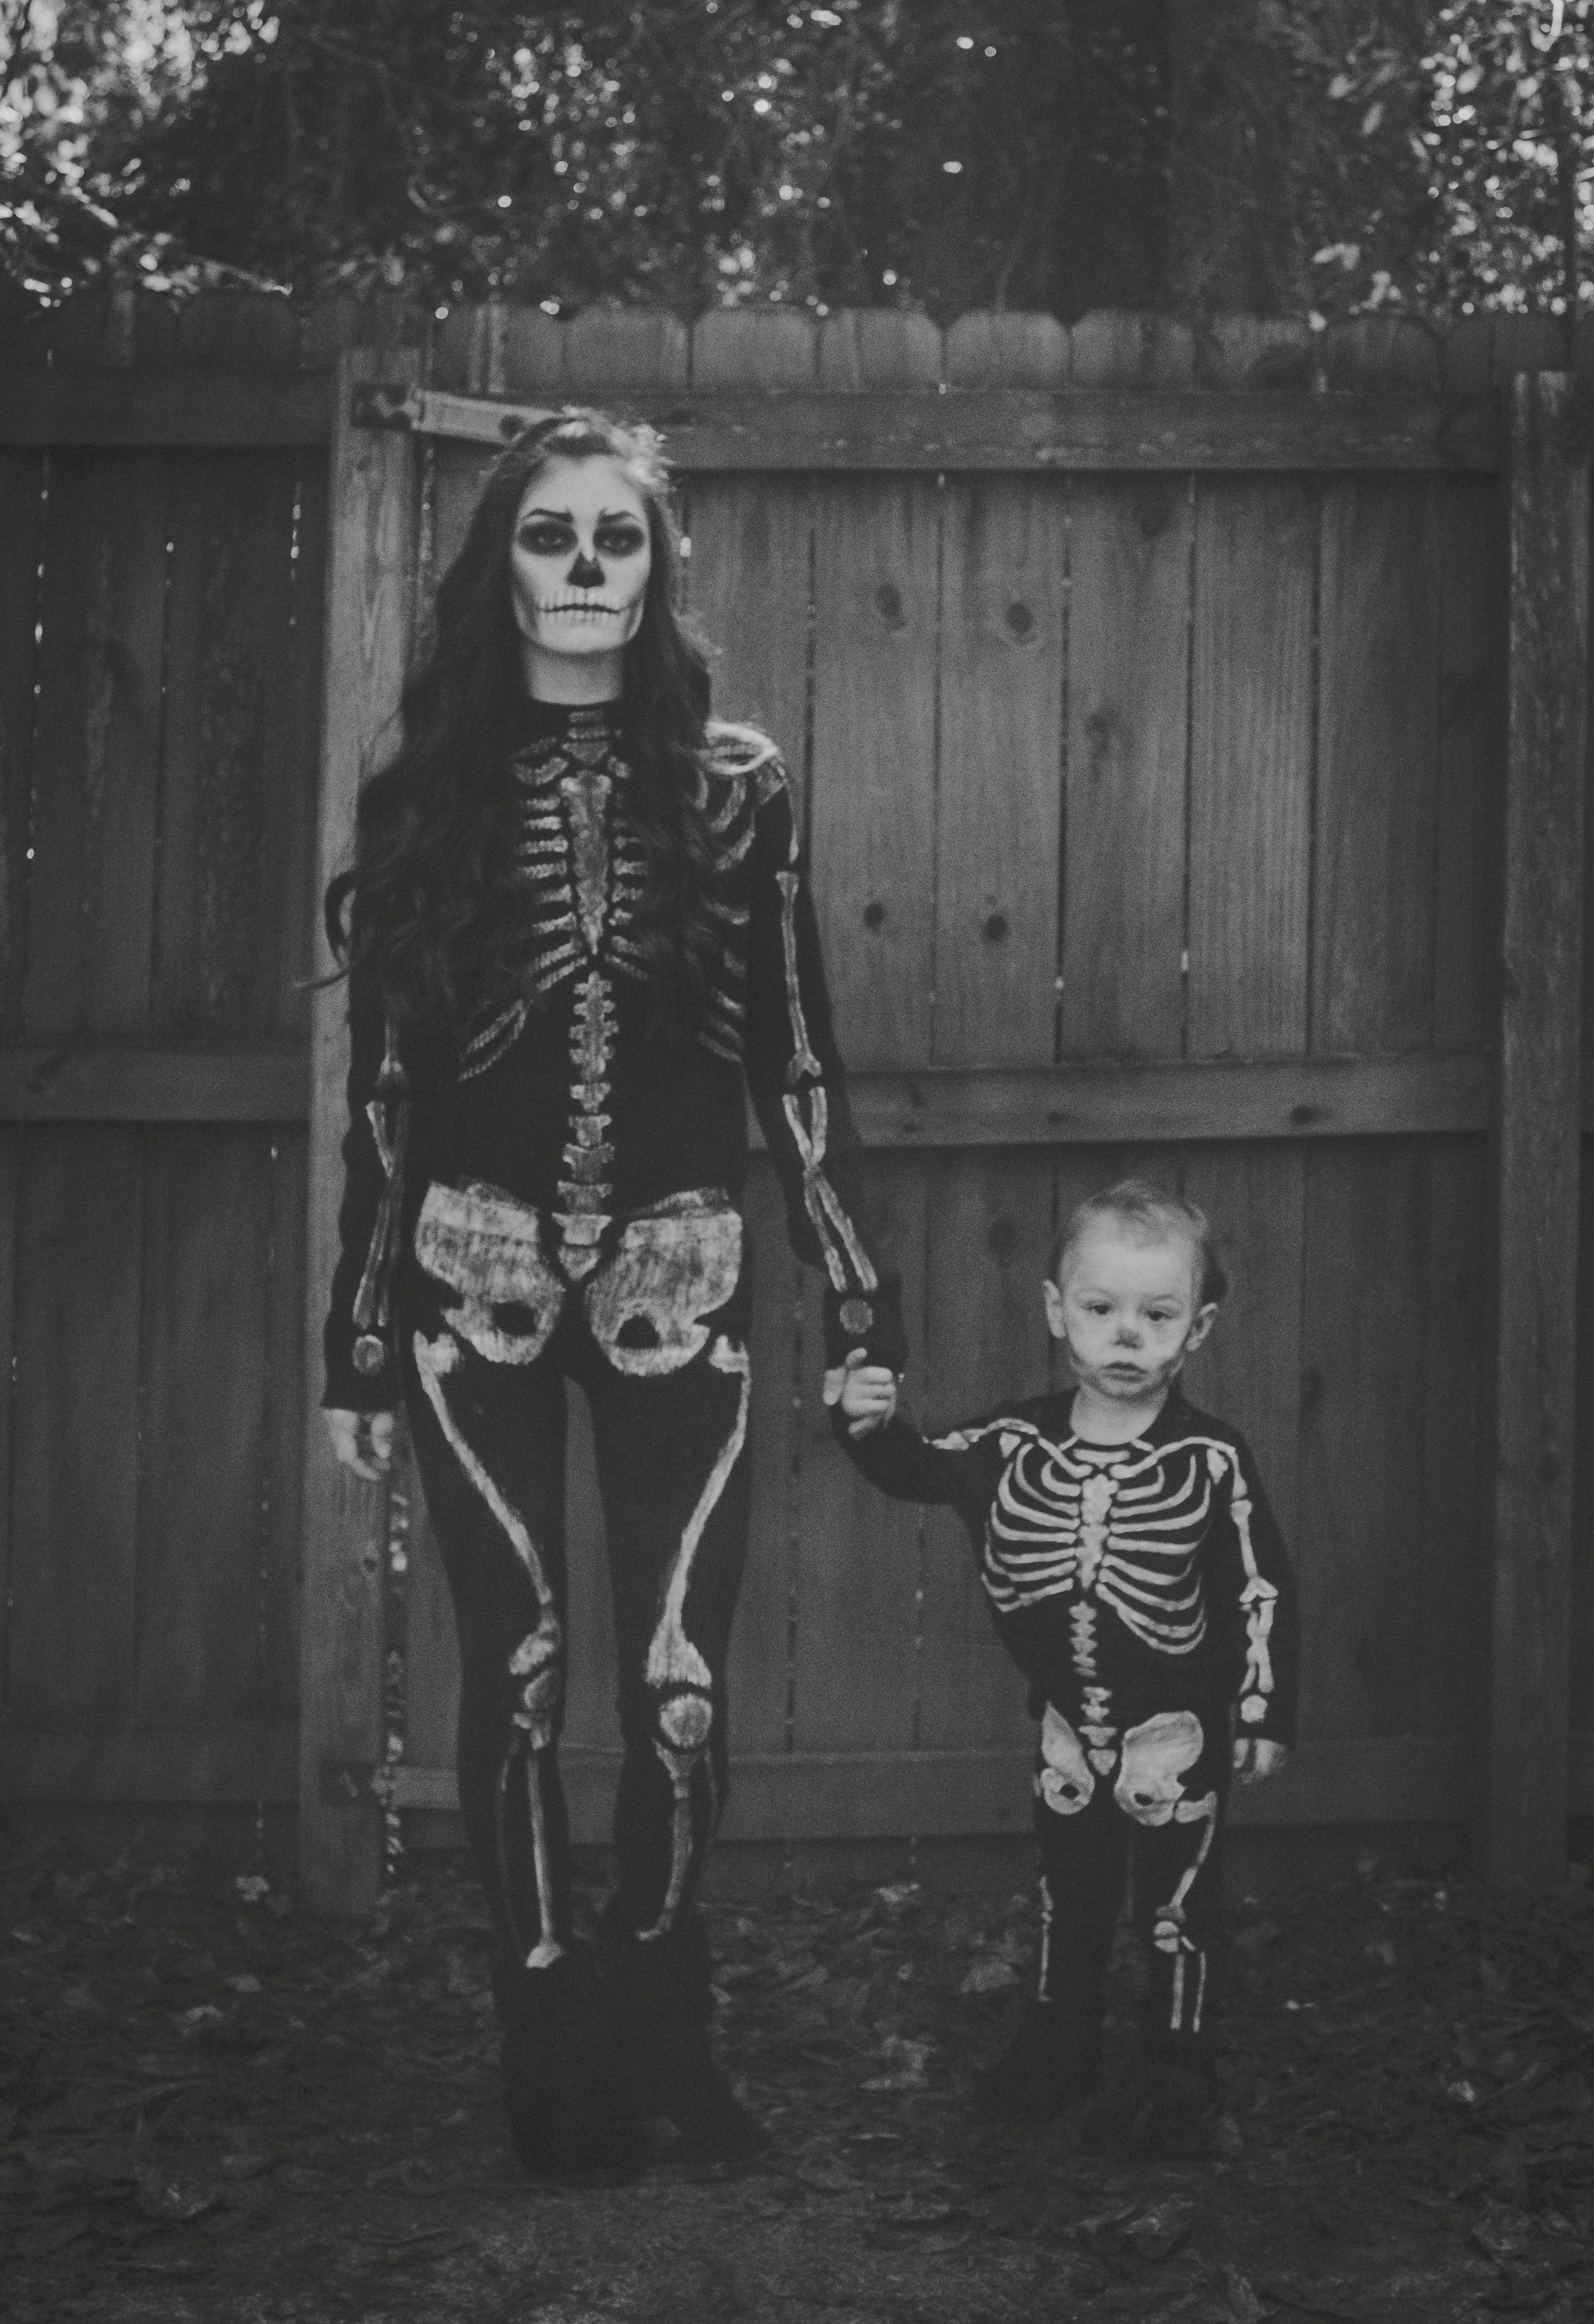 Skeleton Halloween Costume DIY costume Mother and son costume